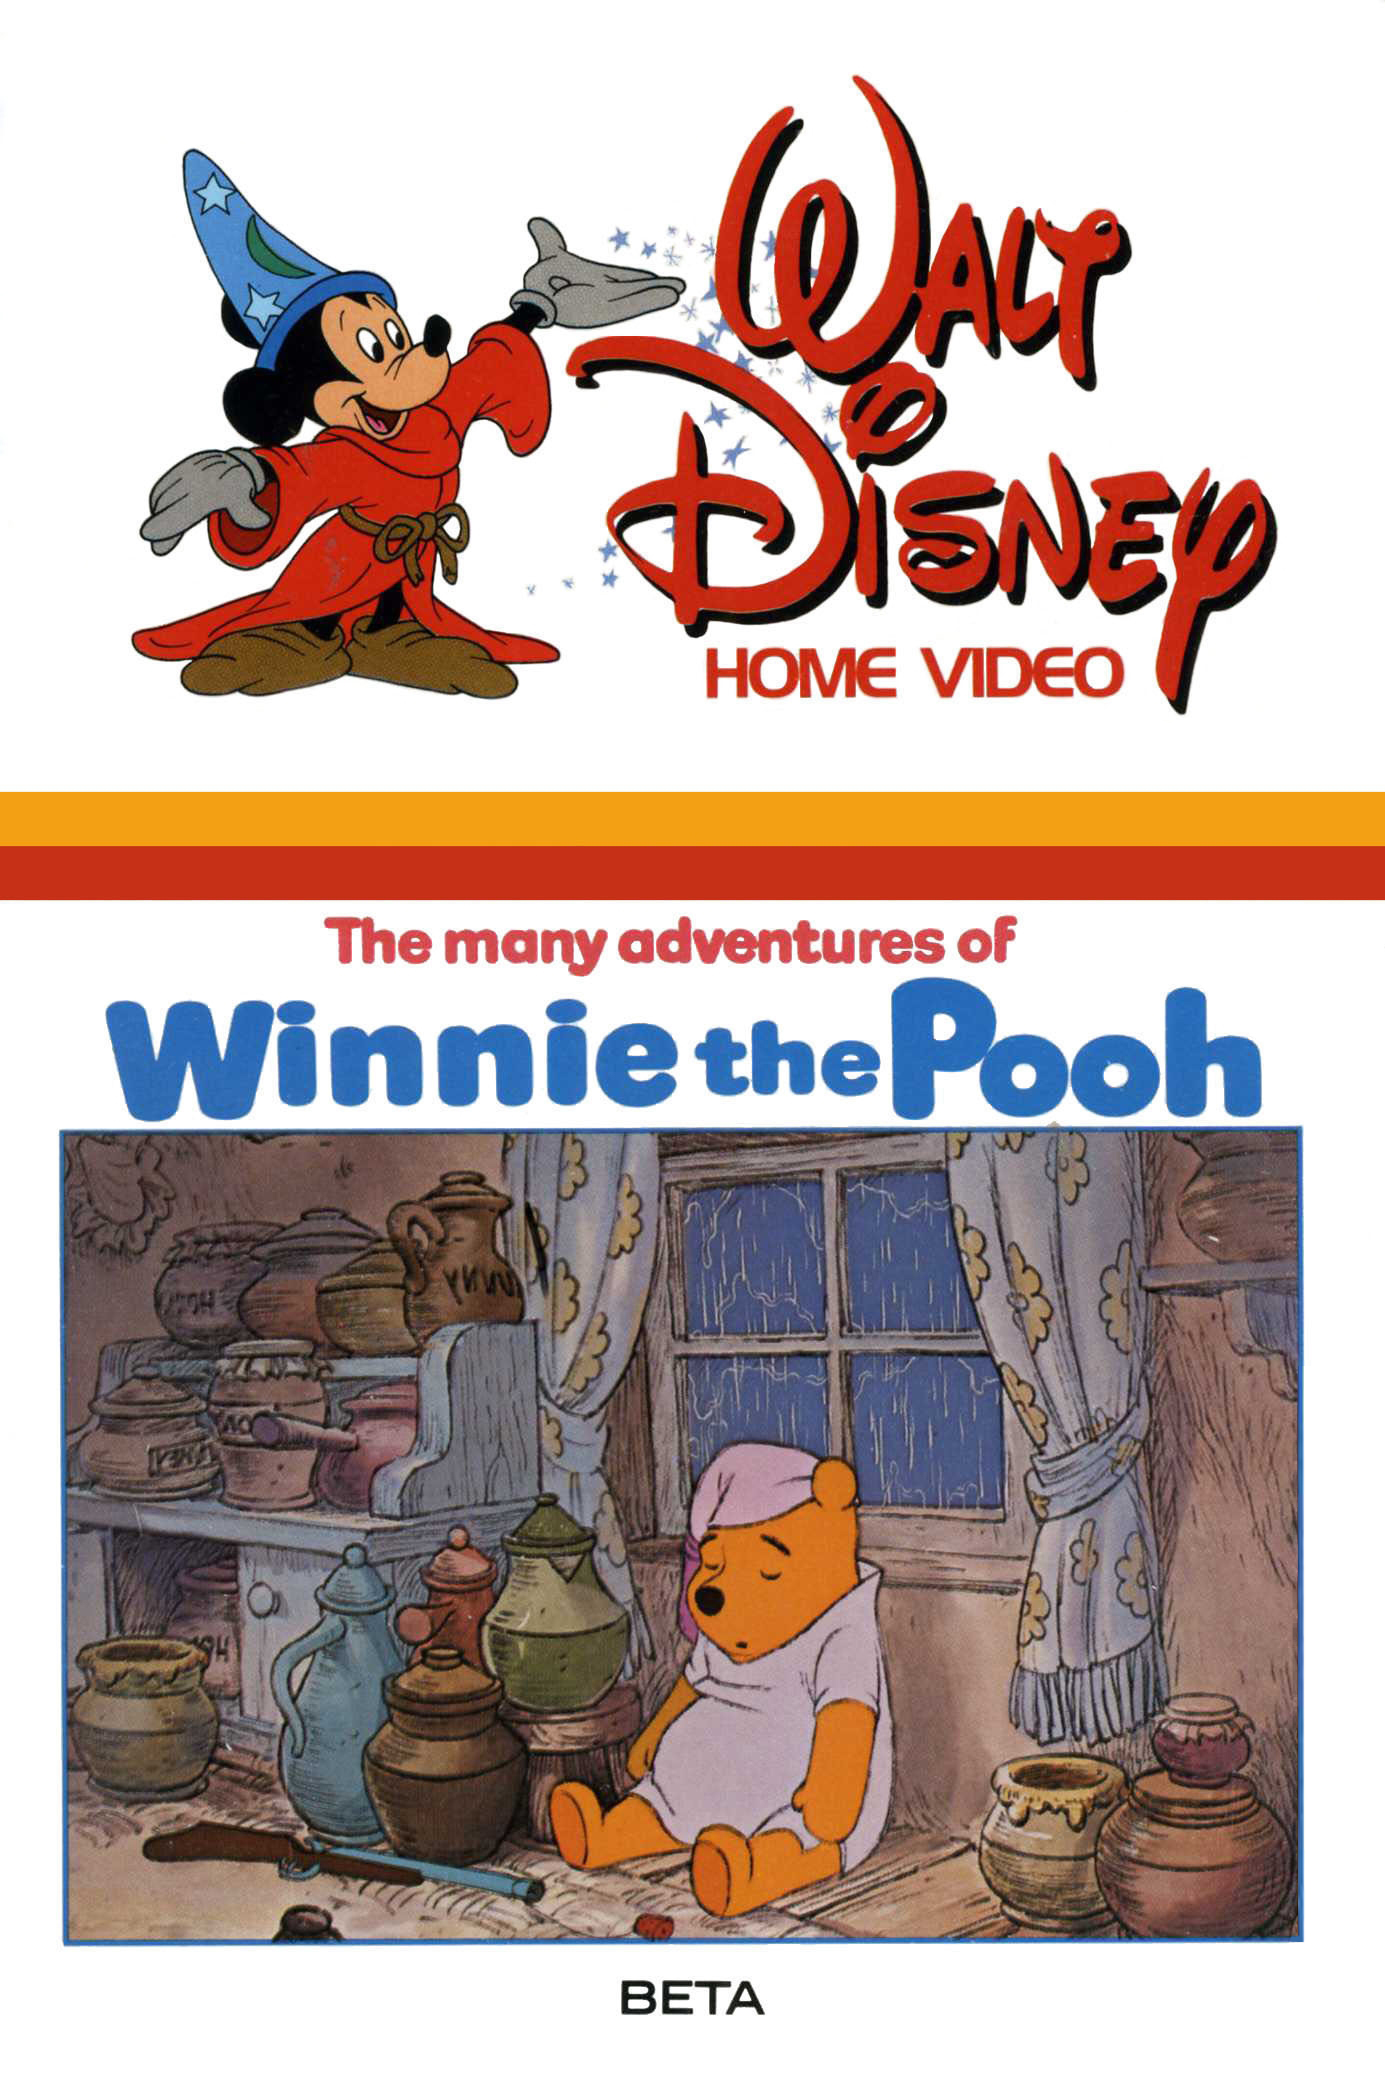 The Many Adventures of Winnie the Pooh (video)